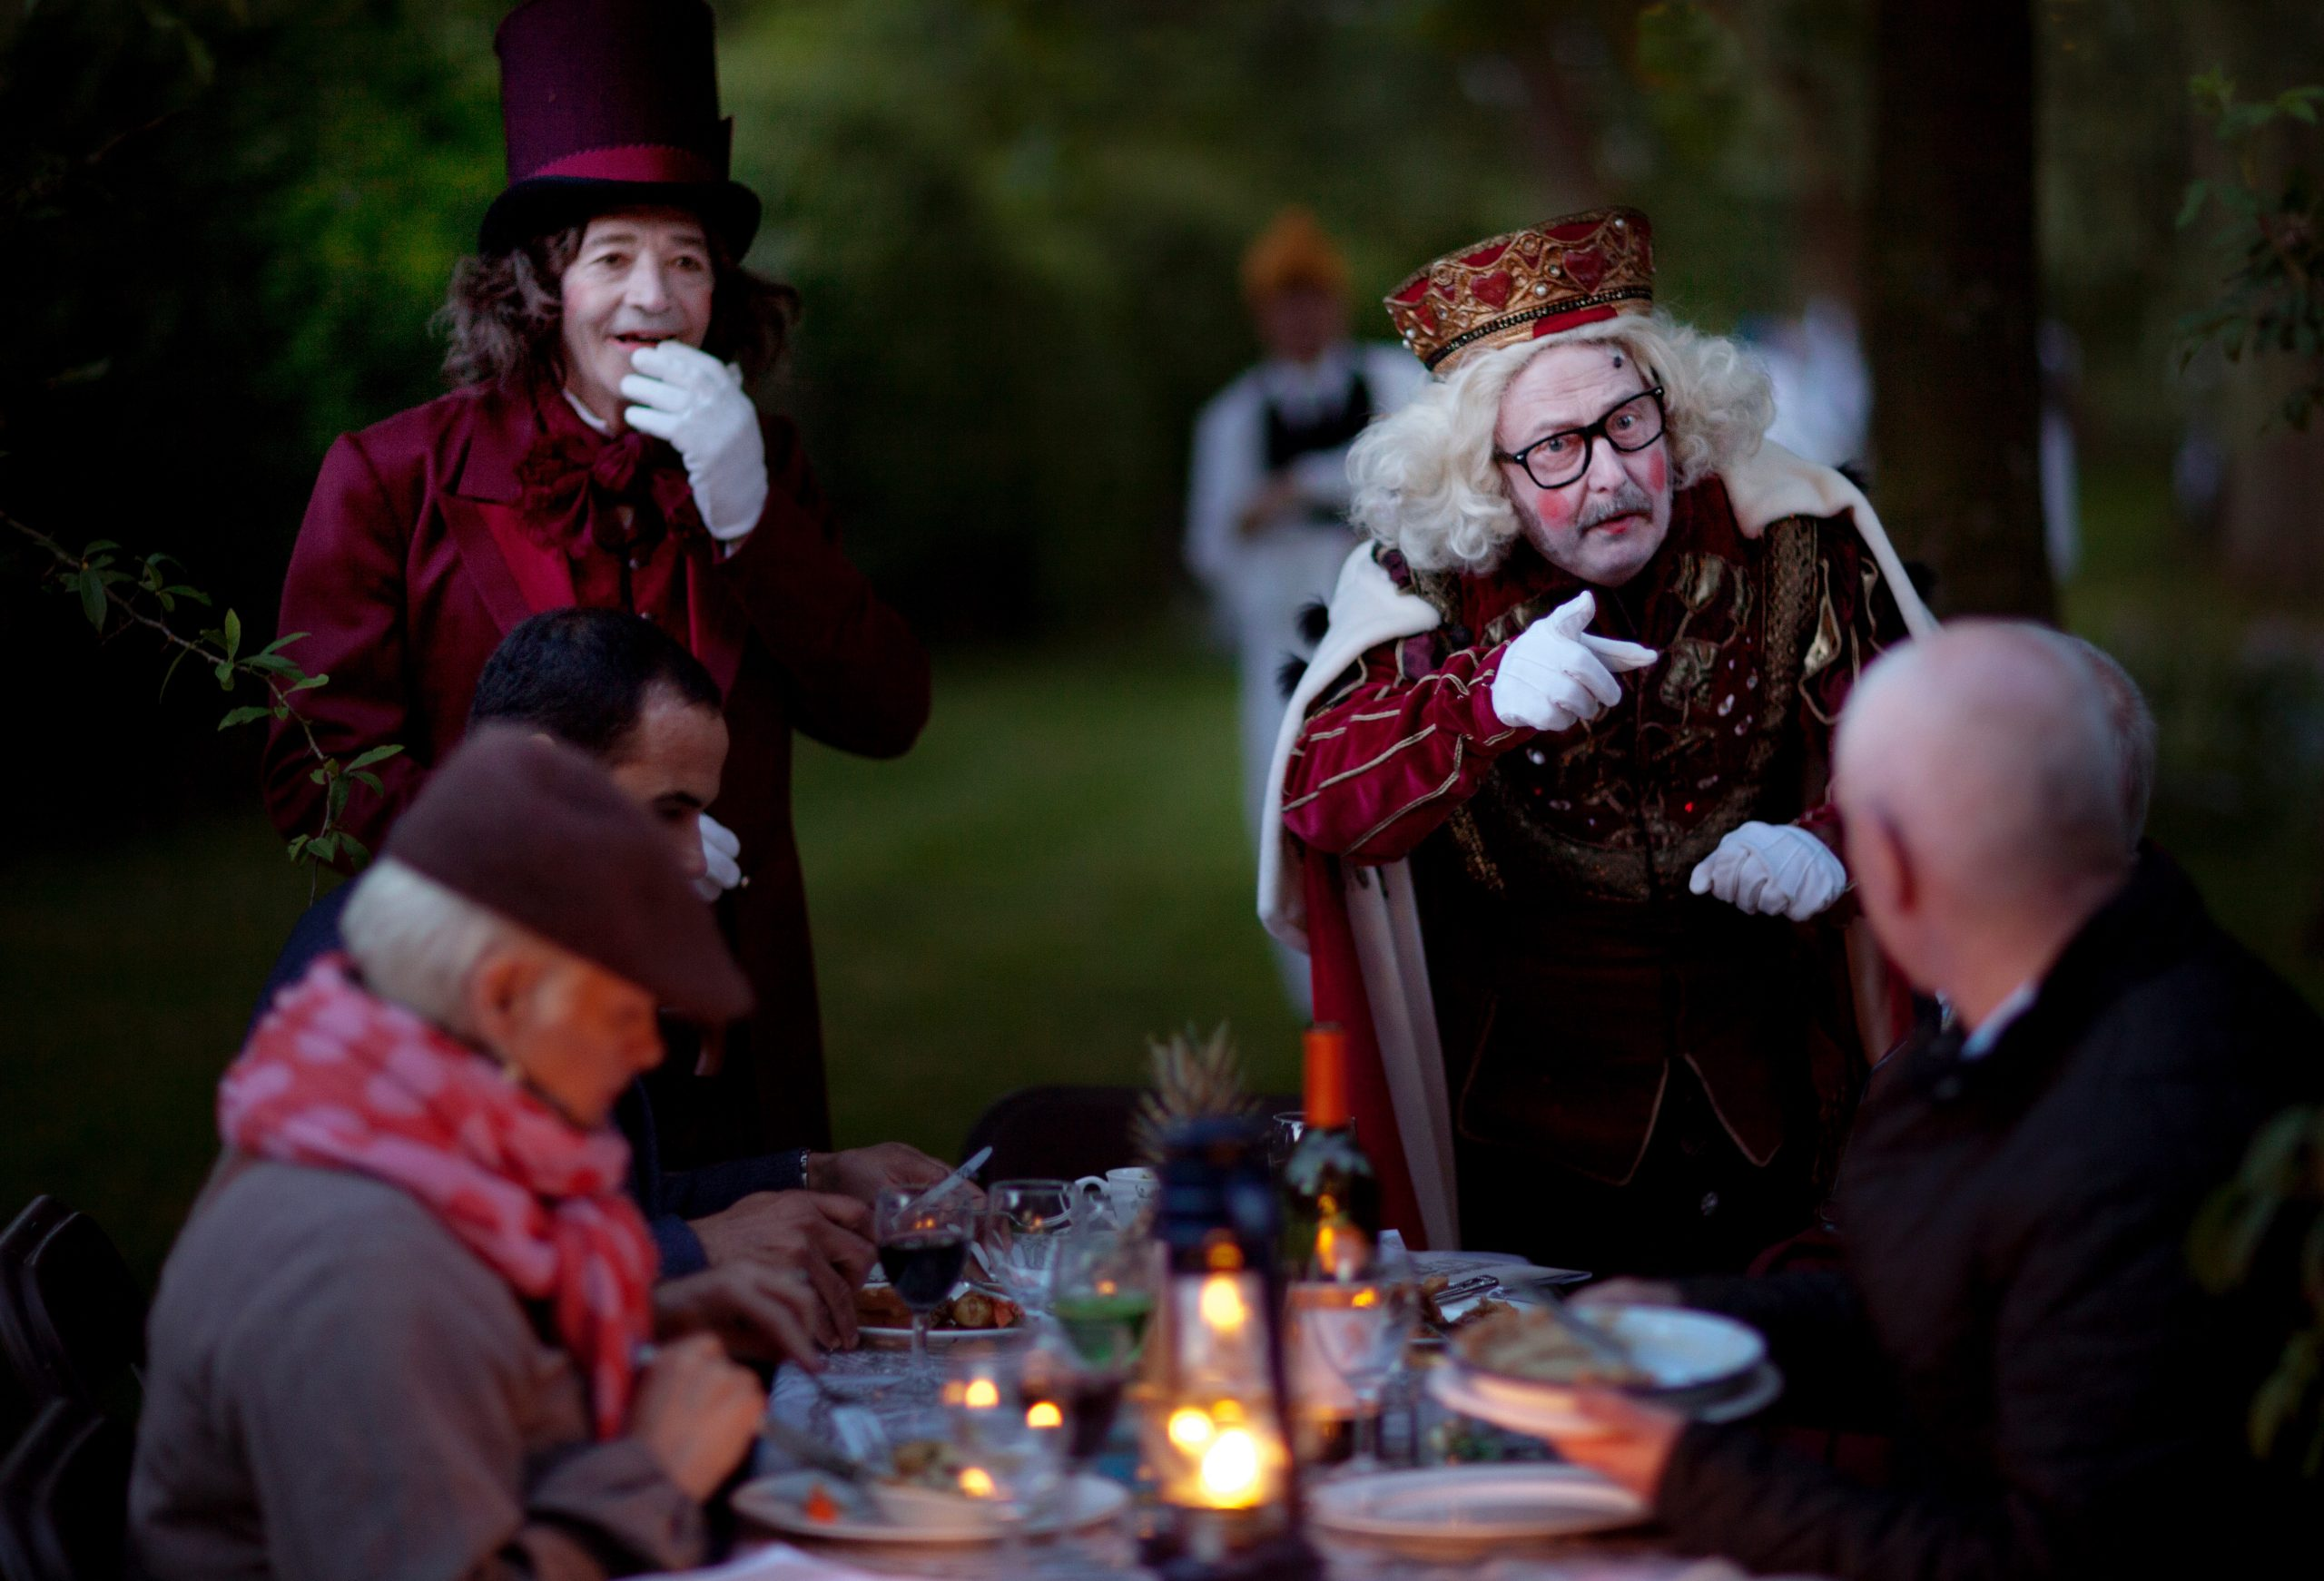 People sat a dining table are looking at a man pointing at one of the people seated. He is dressed as a King with a crown, a white painted face and pink circles on his cheeks